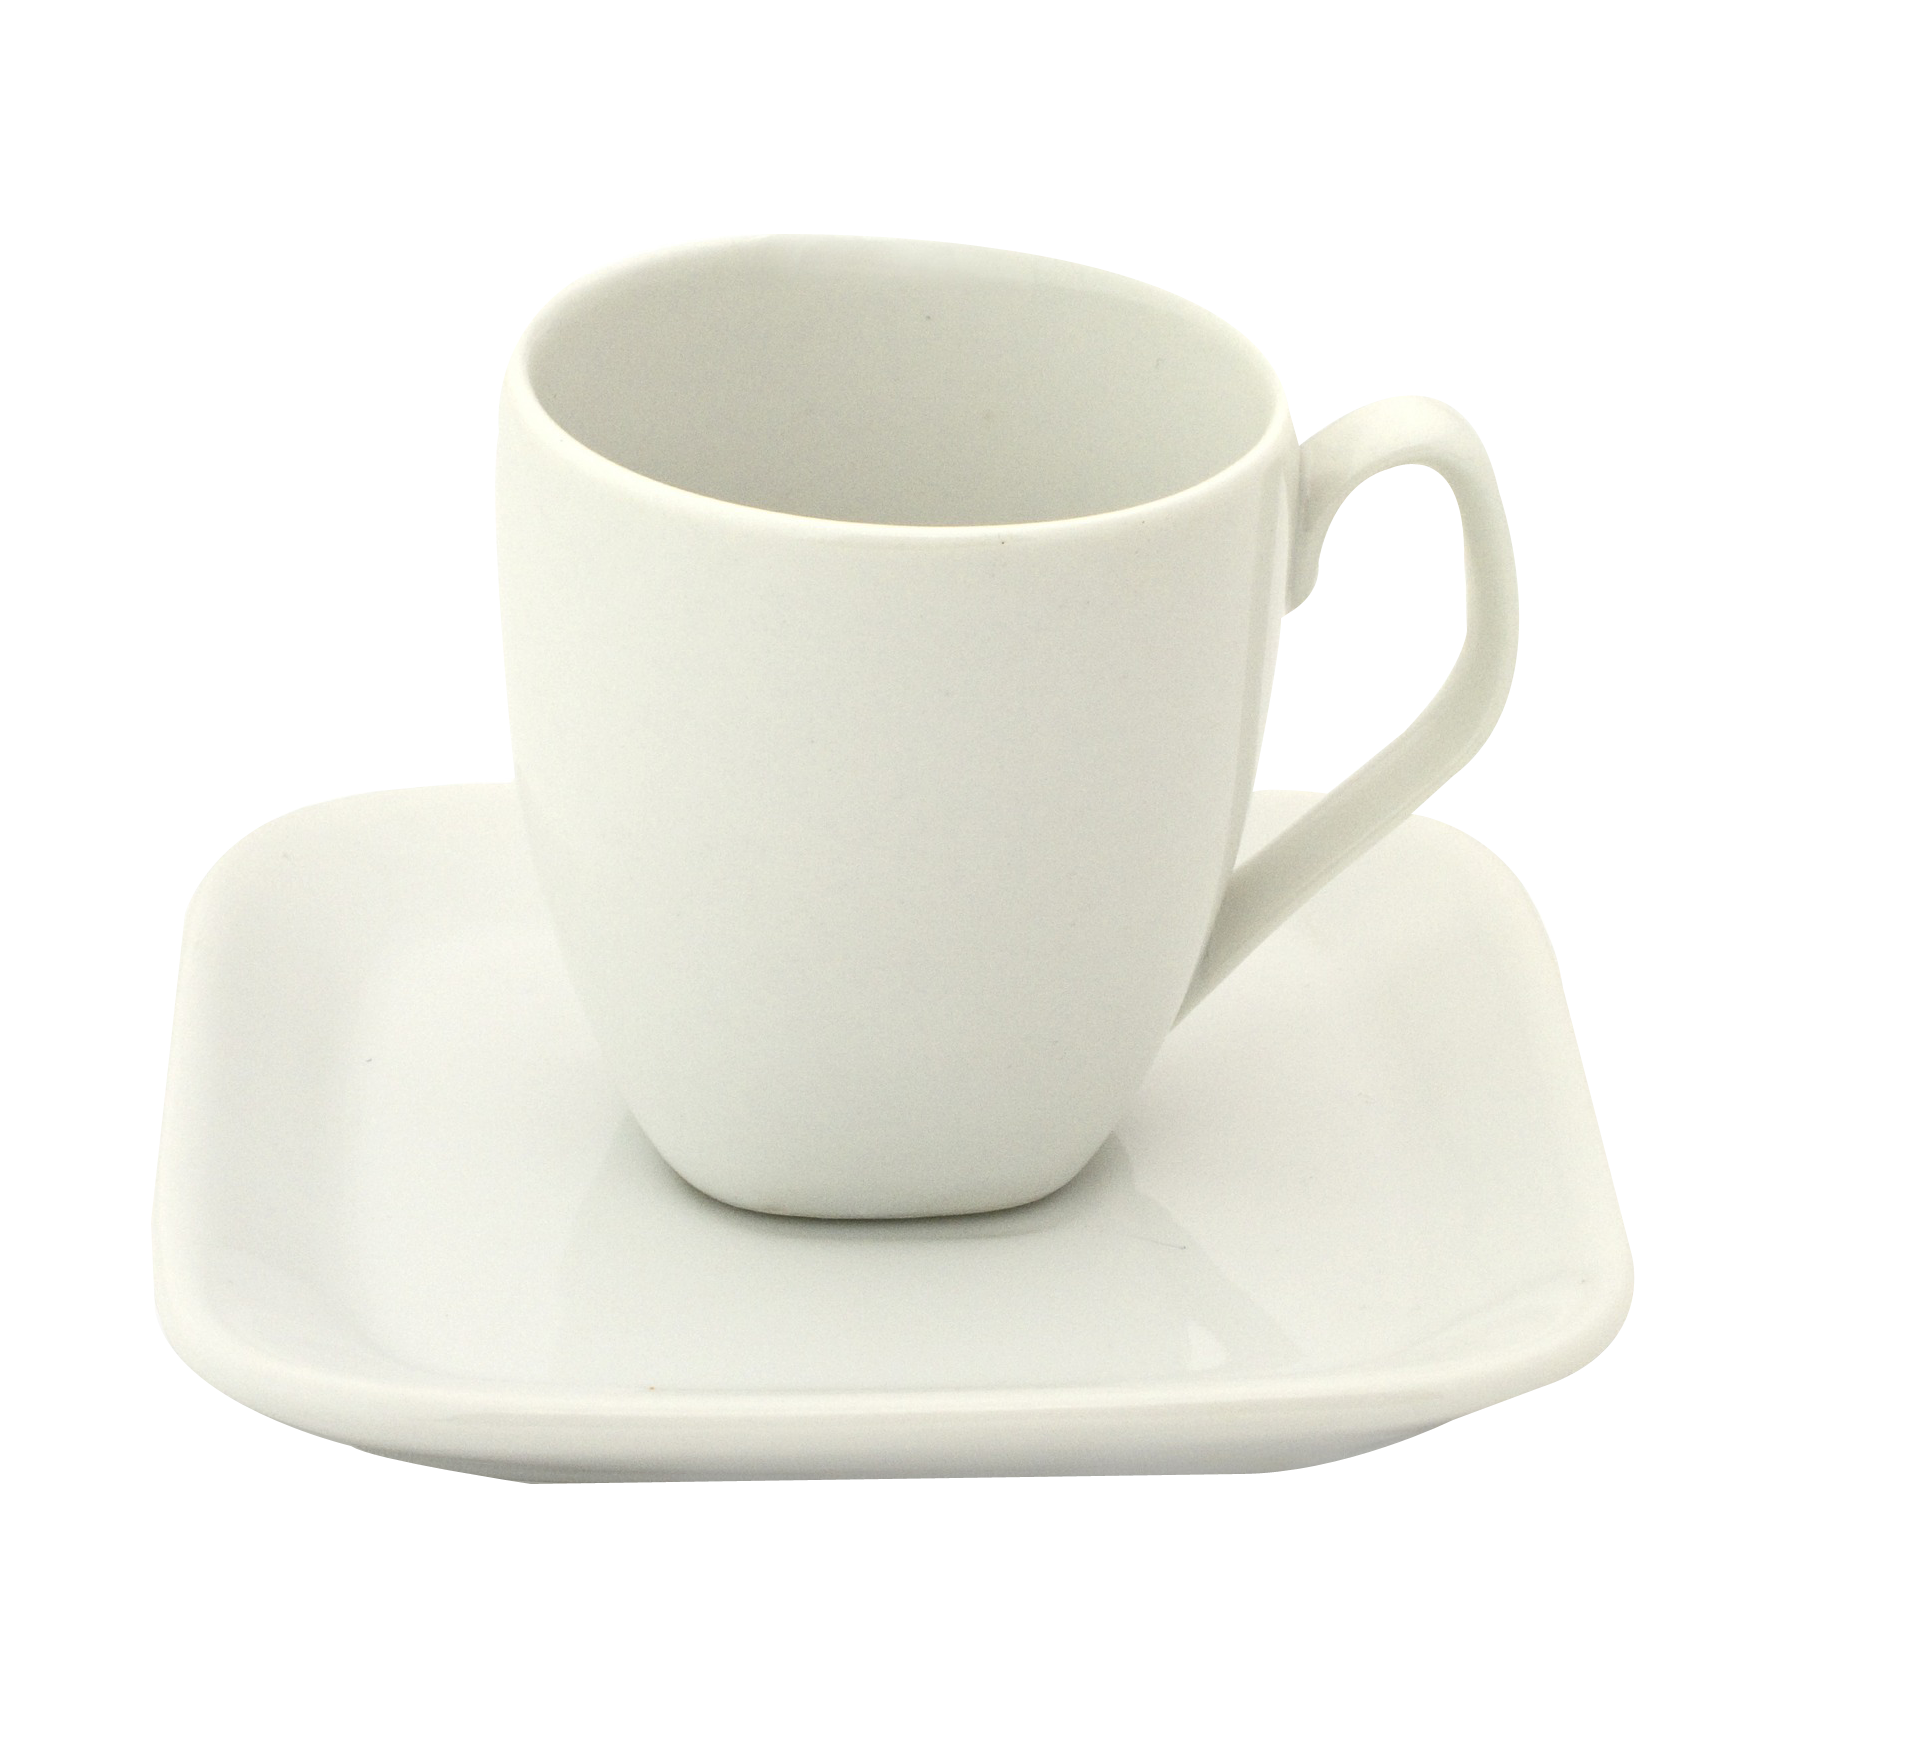 Cup HD PNG - 143645